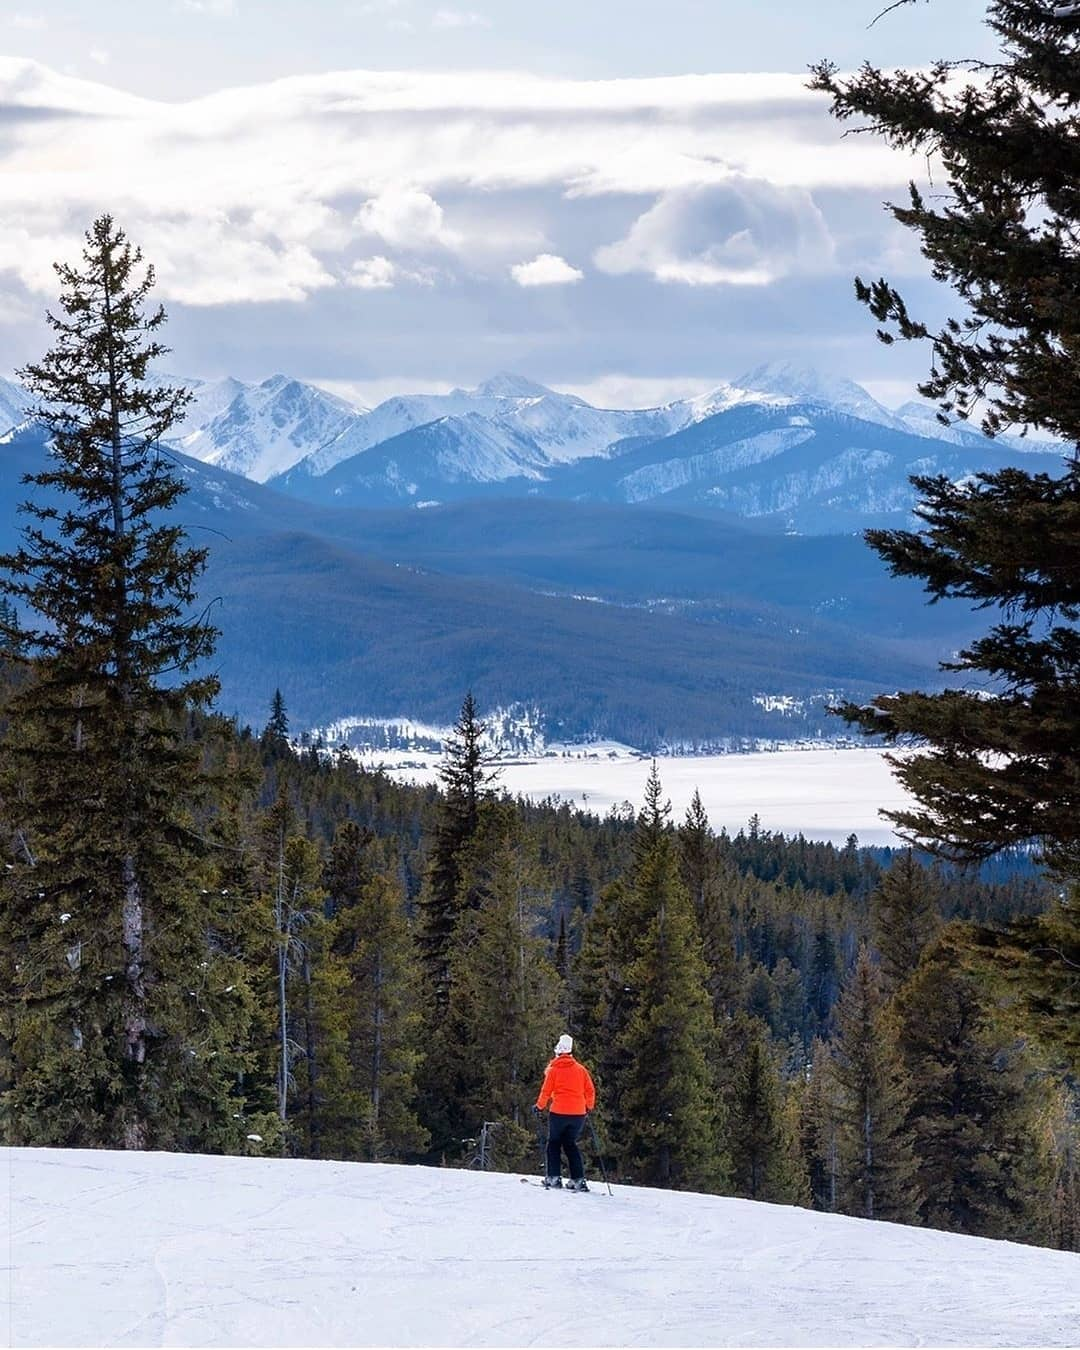 Image of a skier in orange looking out at the mountains at Discovery Ski Area in Montana